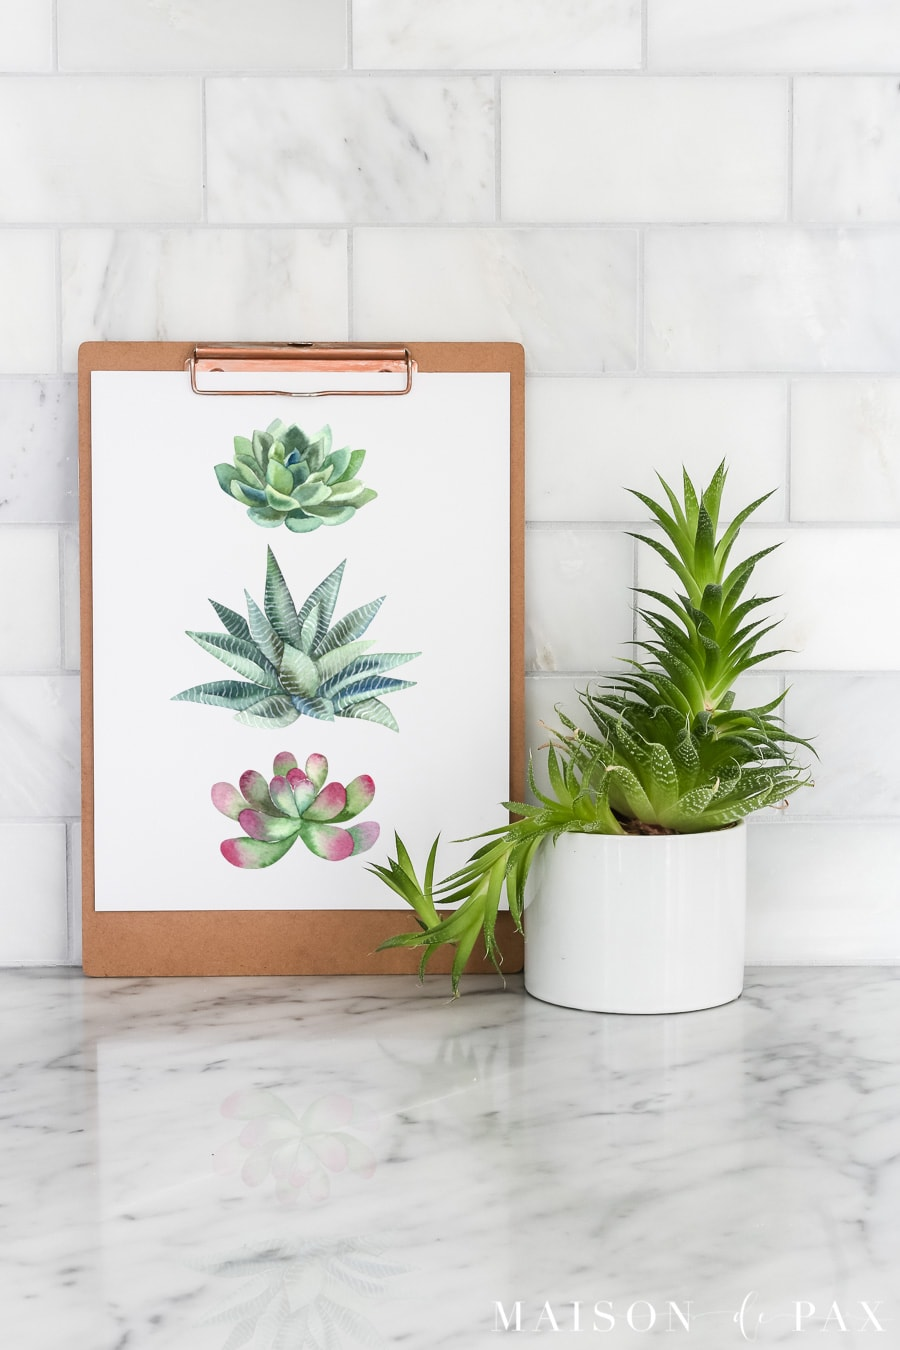 Free succulent printable art: Print this succulent wall art to decorate your space for summer! #freeprintable #printableart #succulent #wallart #succulentart #watercolor #printable #printablewatercolor #summerdecor